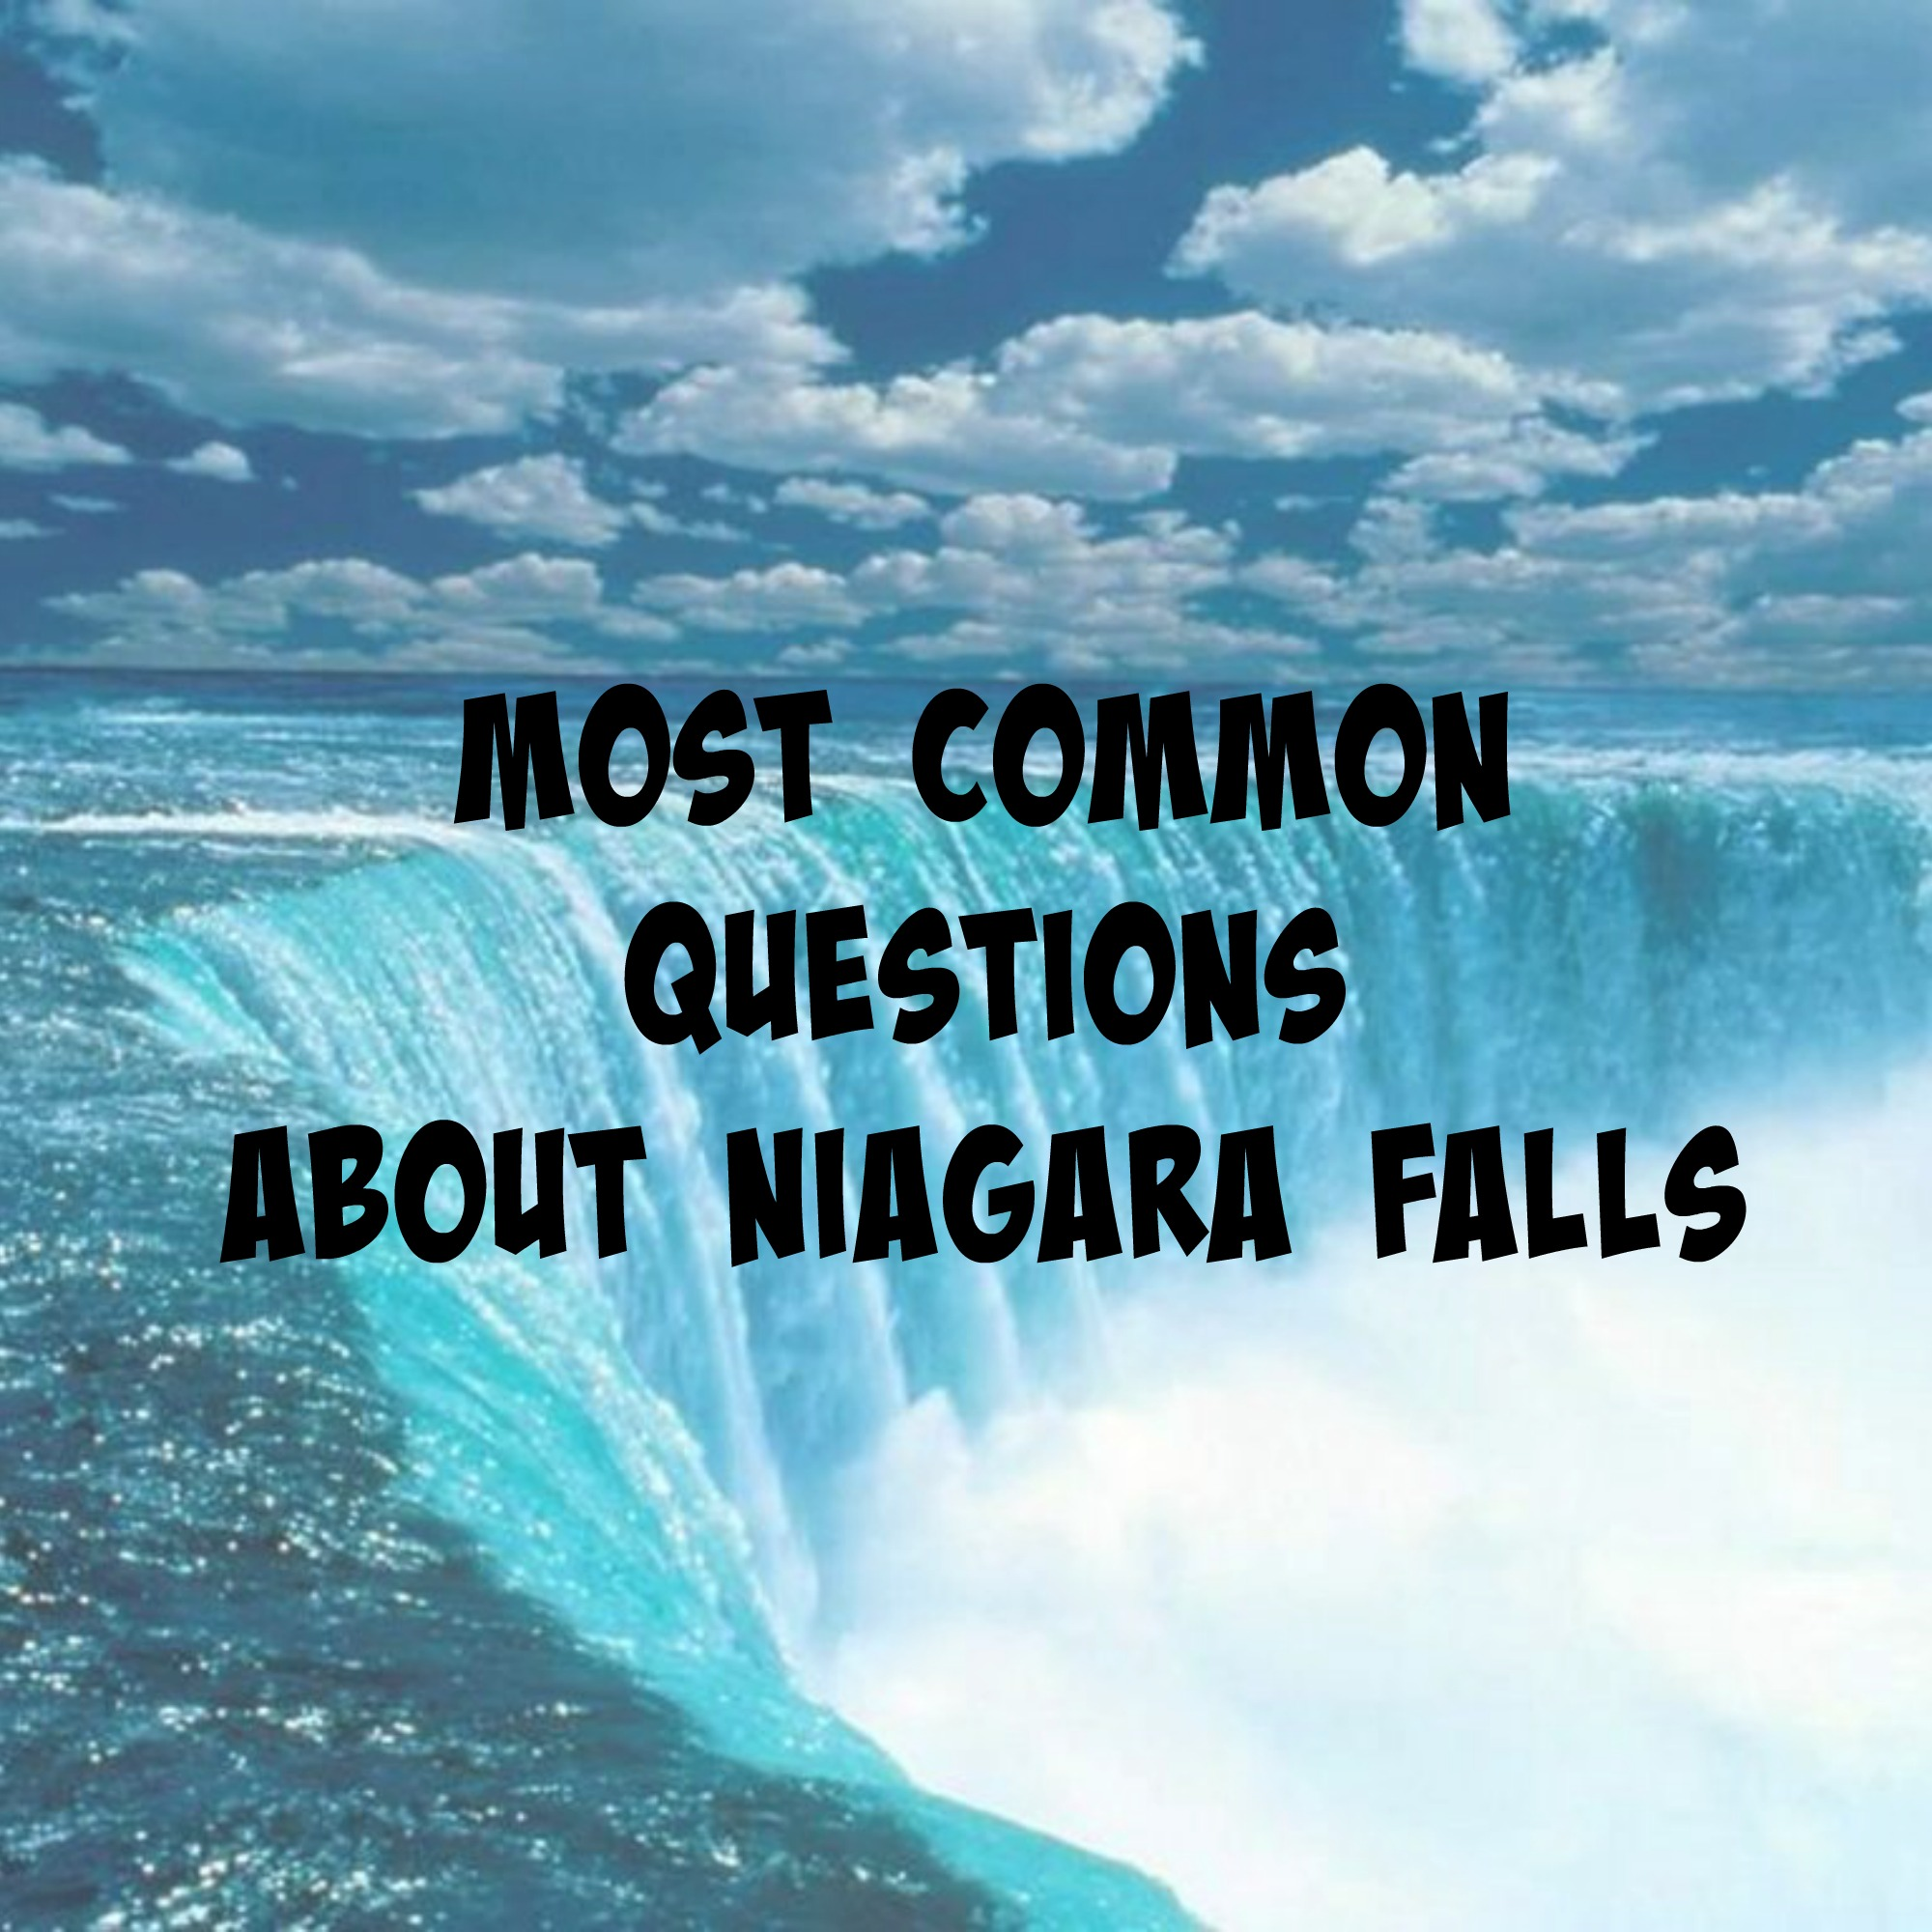 Most Common Great Wolf Lodge & Niagara Falls Questions Answered